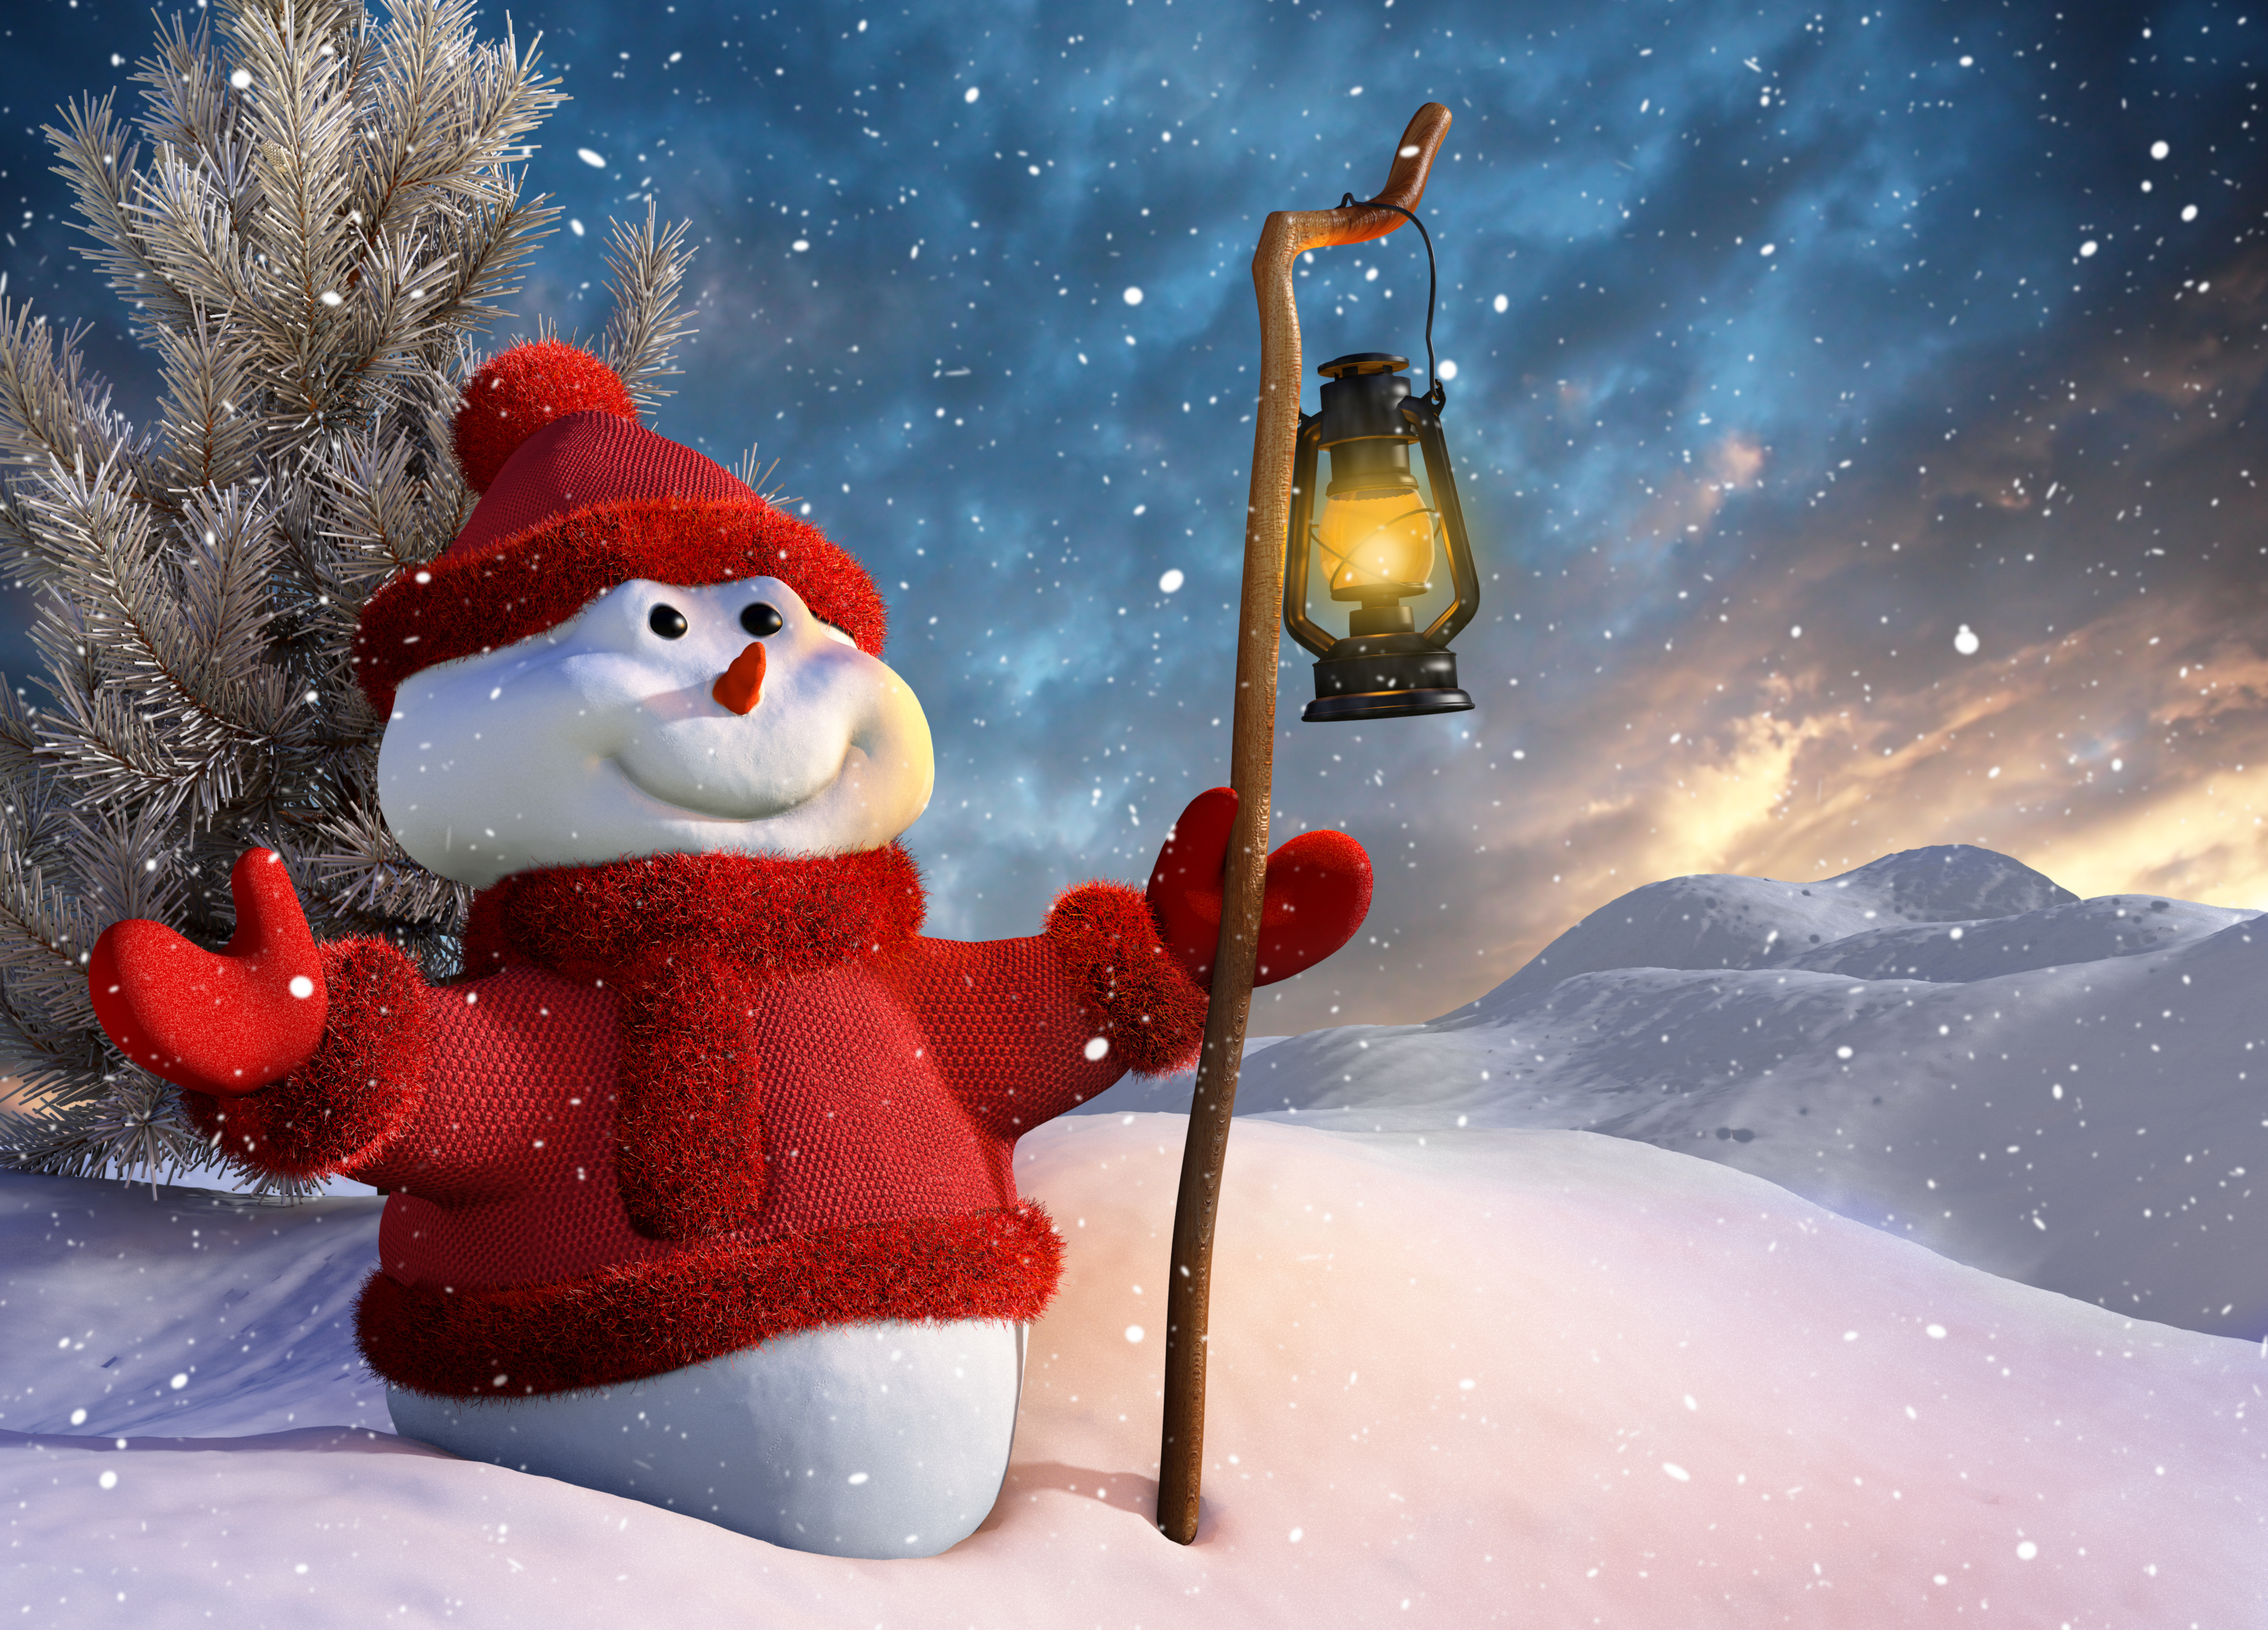 Winter New Year Christmas Wallpapers - 4800x3450 - 6879396